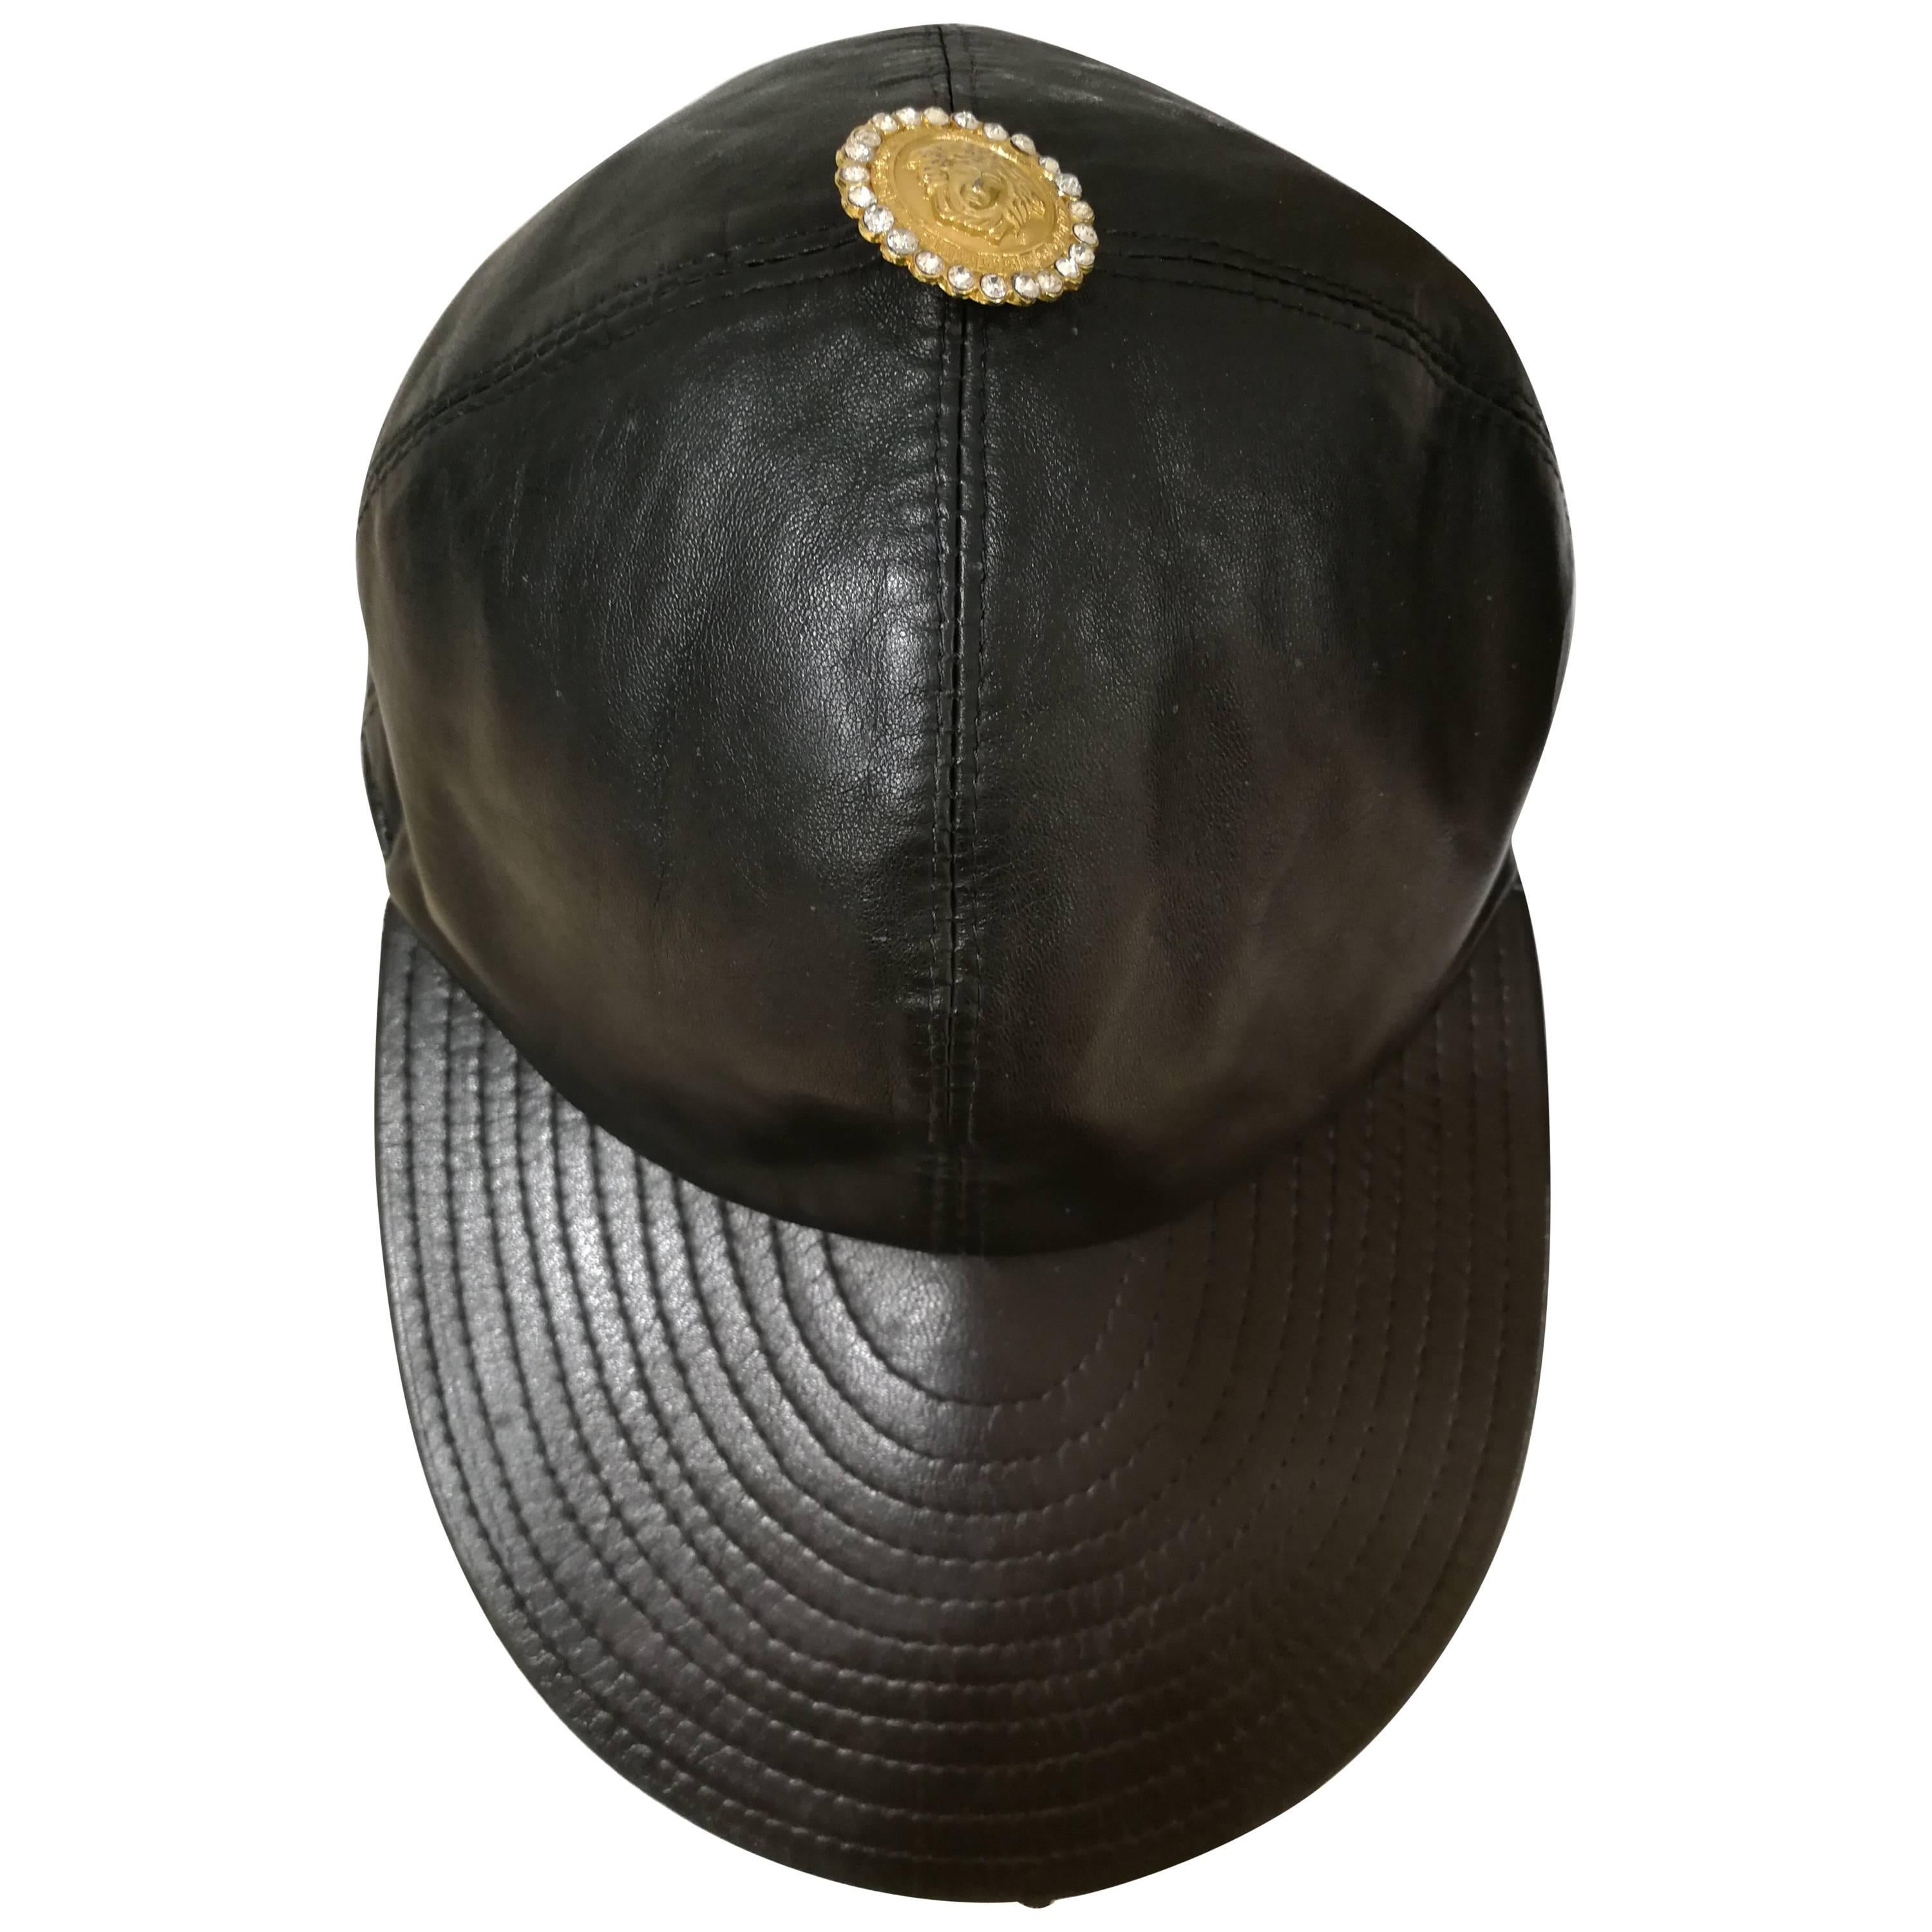 Gianni Versace Black Leather Hat For Sale at 1stdibs ff6fc3831a9